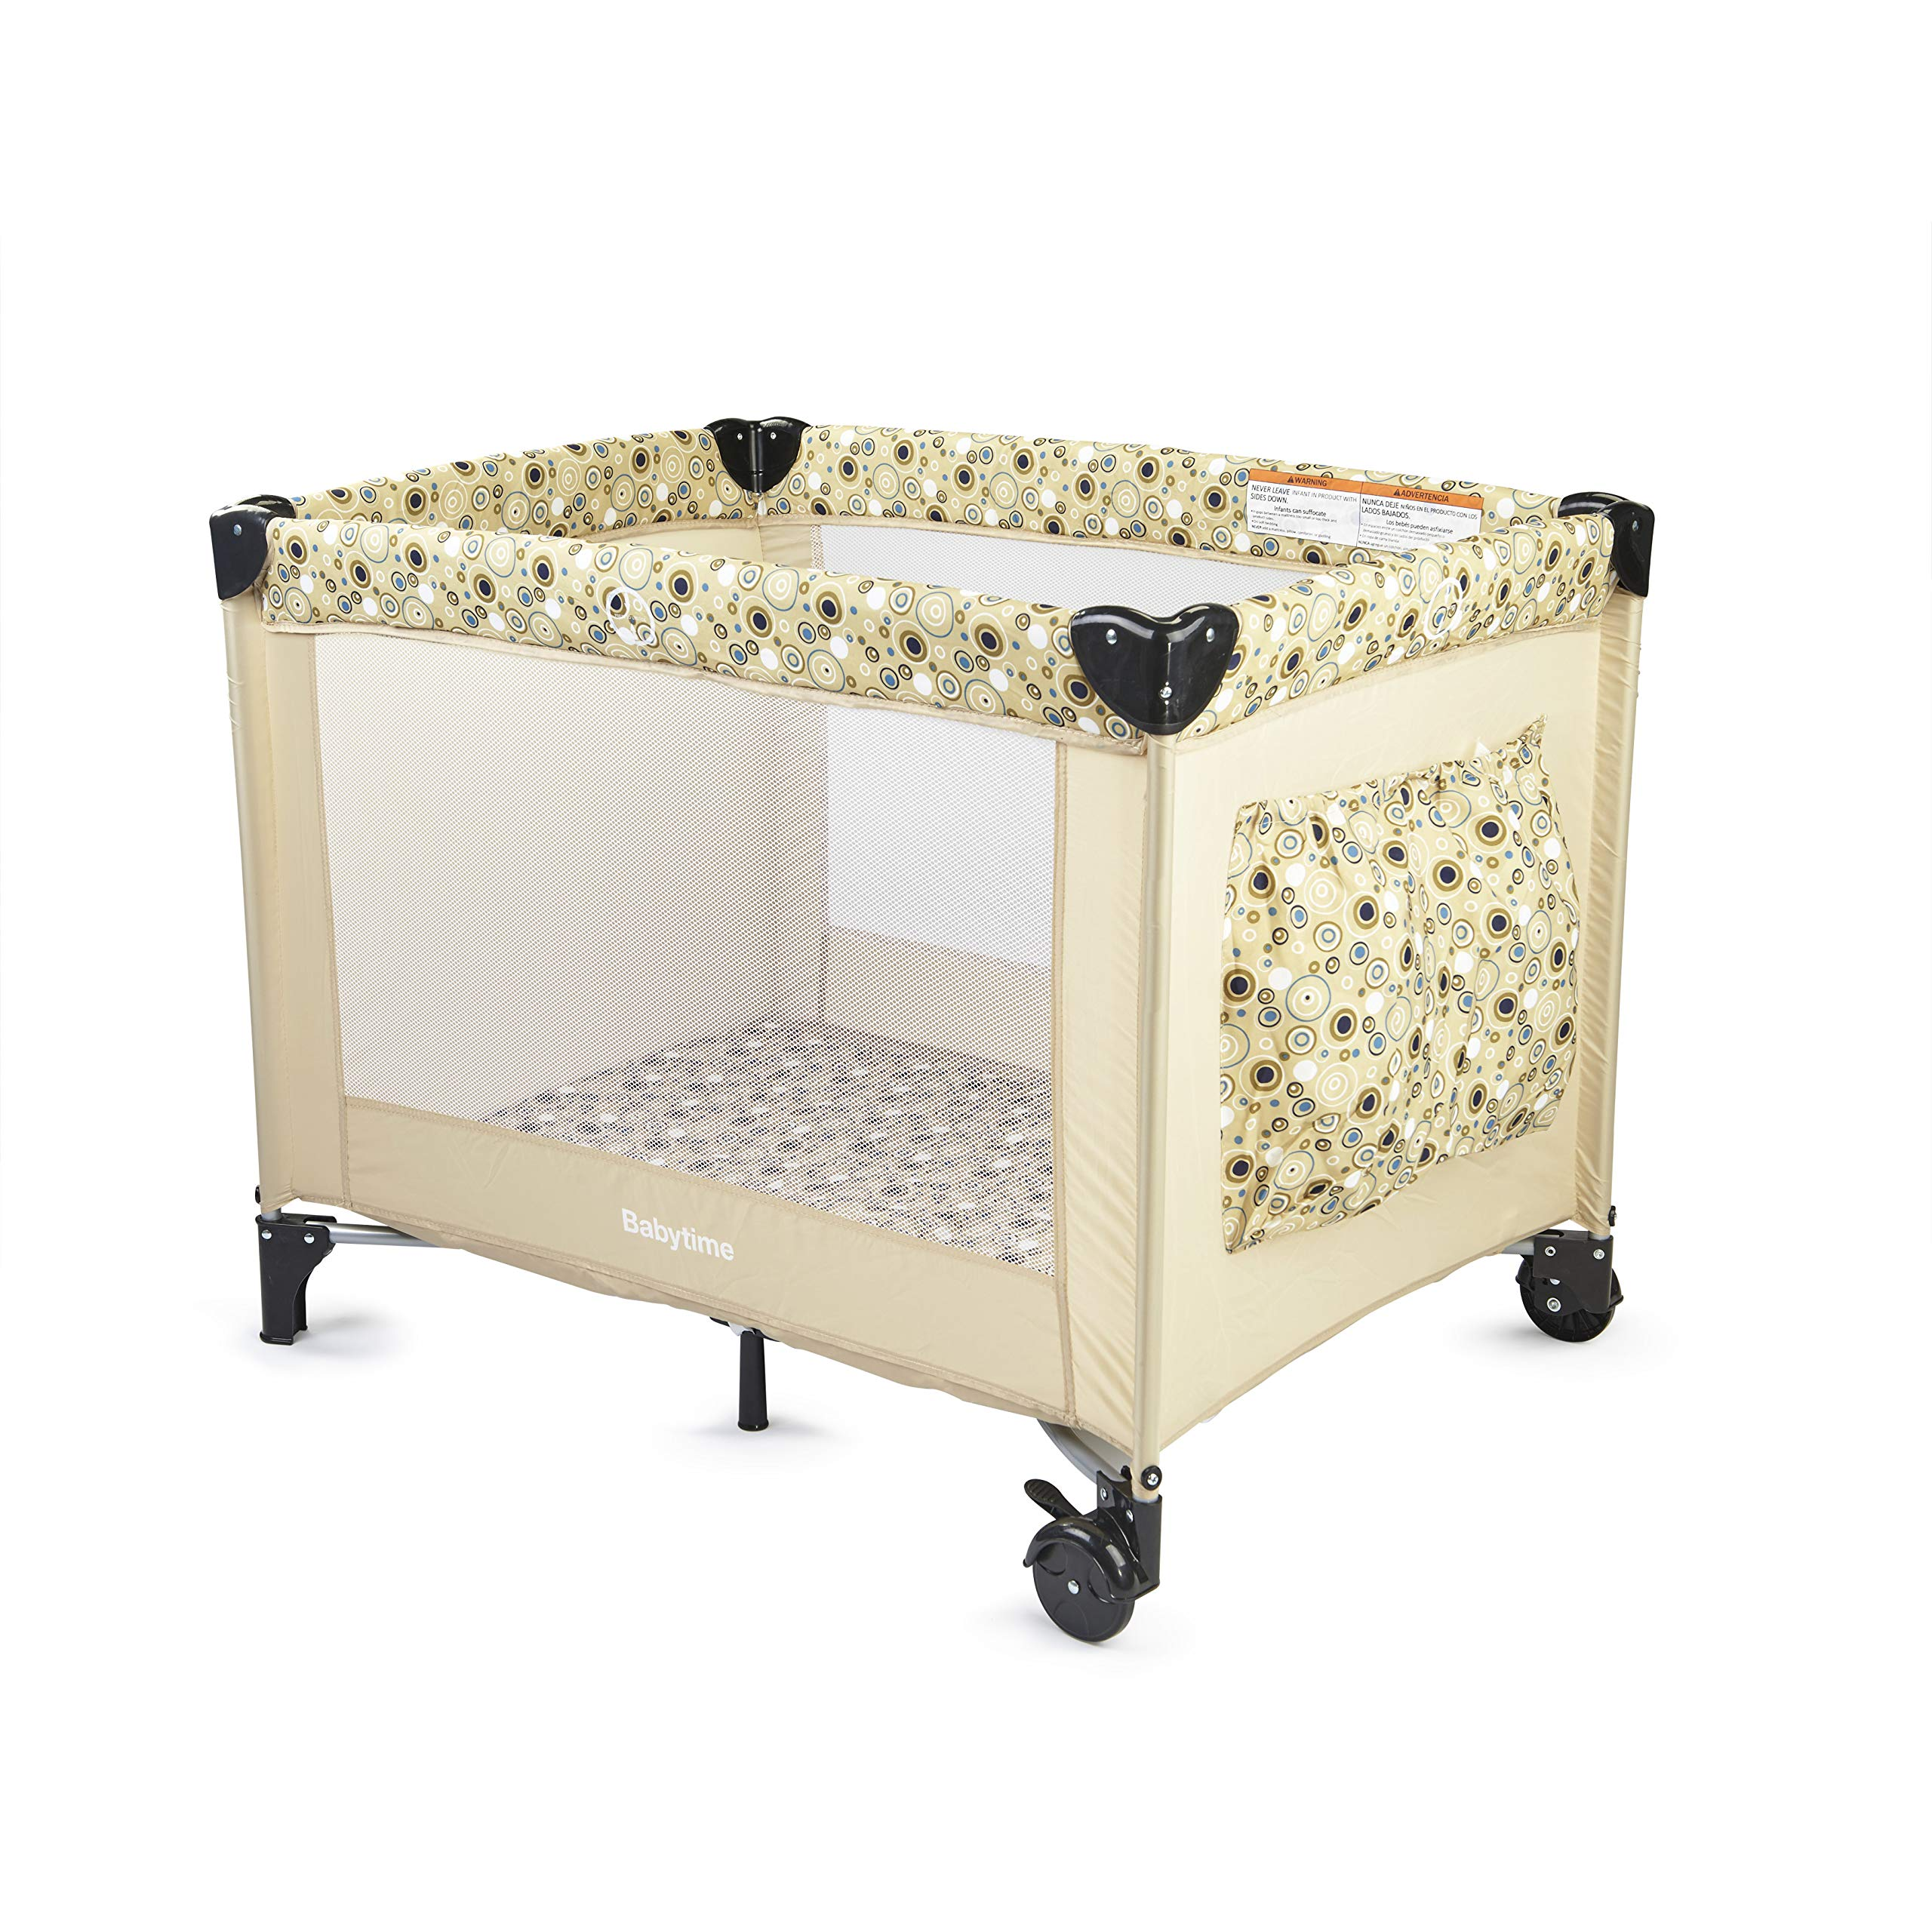 Big Oshi Hudson Portable Playard - Simple, Foldable Nursery Center Includes Carry Bag for Extra Portability and Easy Storage - Lightweight, Sturdy Design, Beige